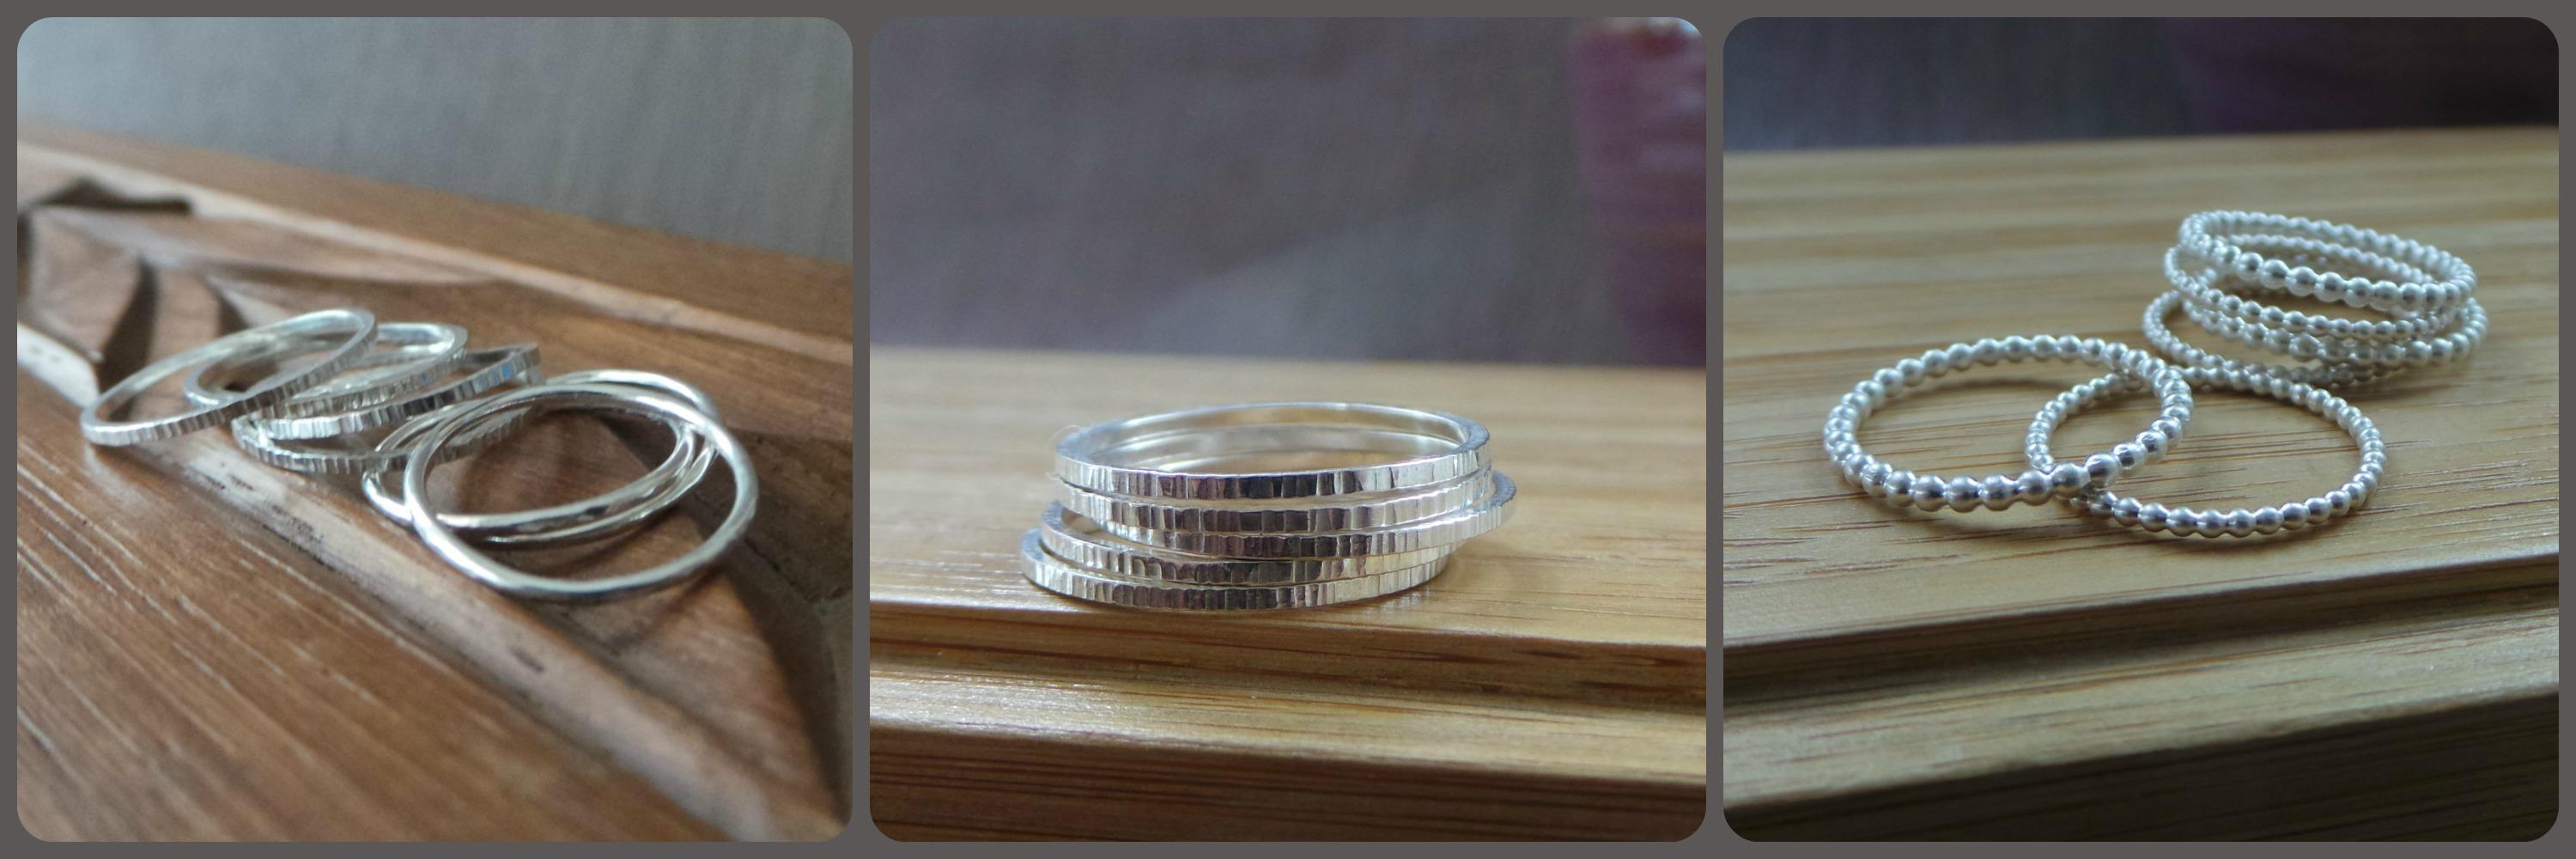 Silver Stacking Rings: Making Beautiful Rings From Silver Wire ...